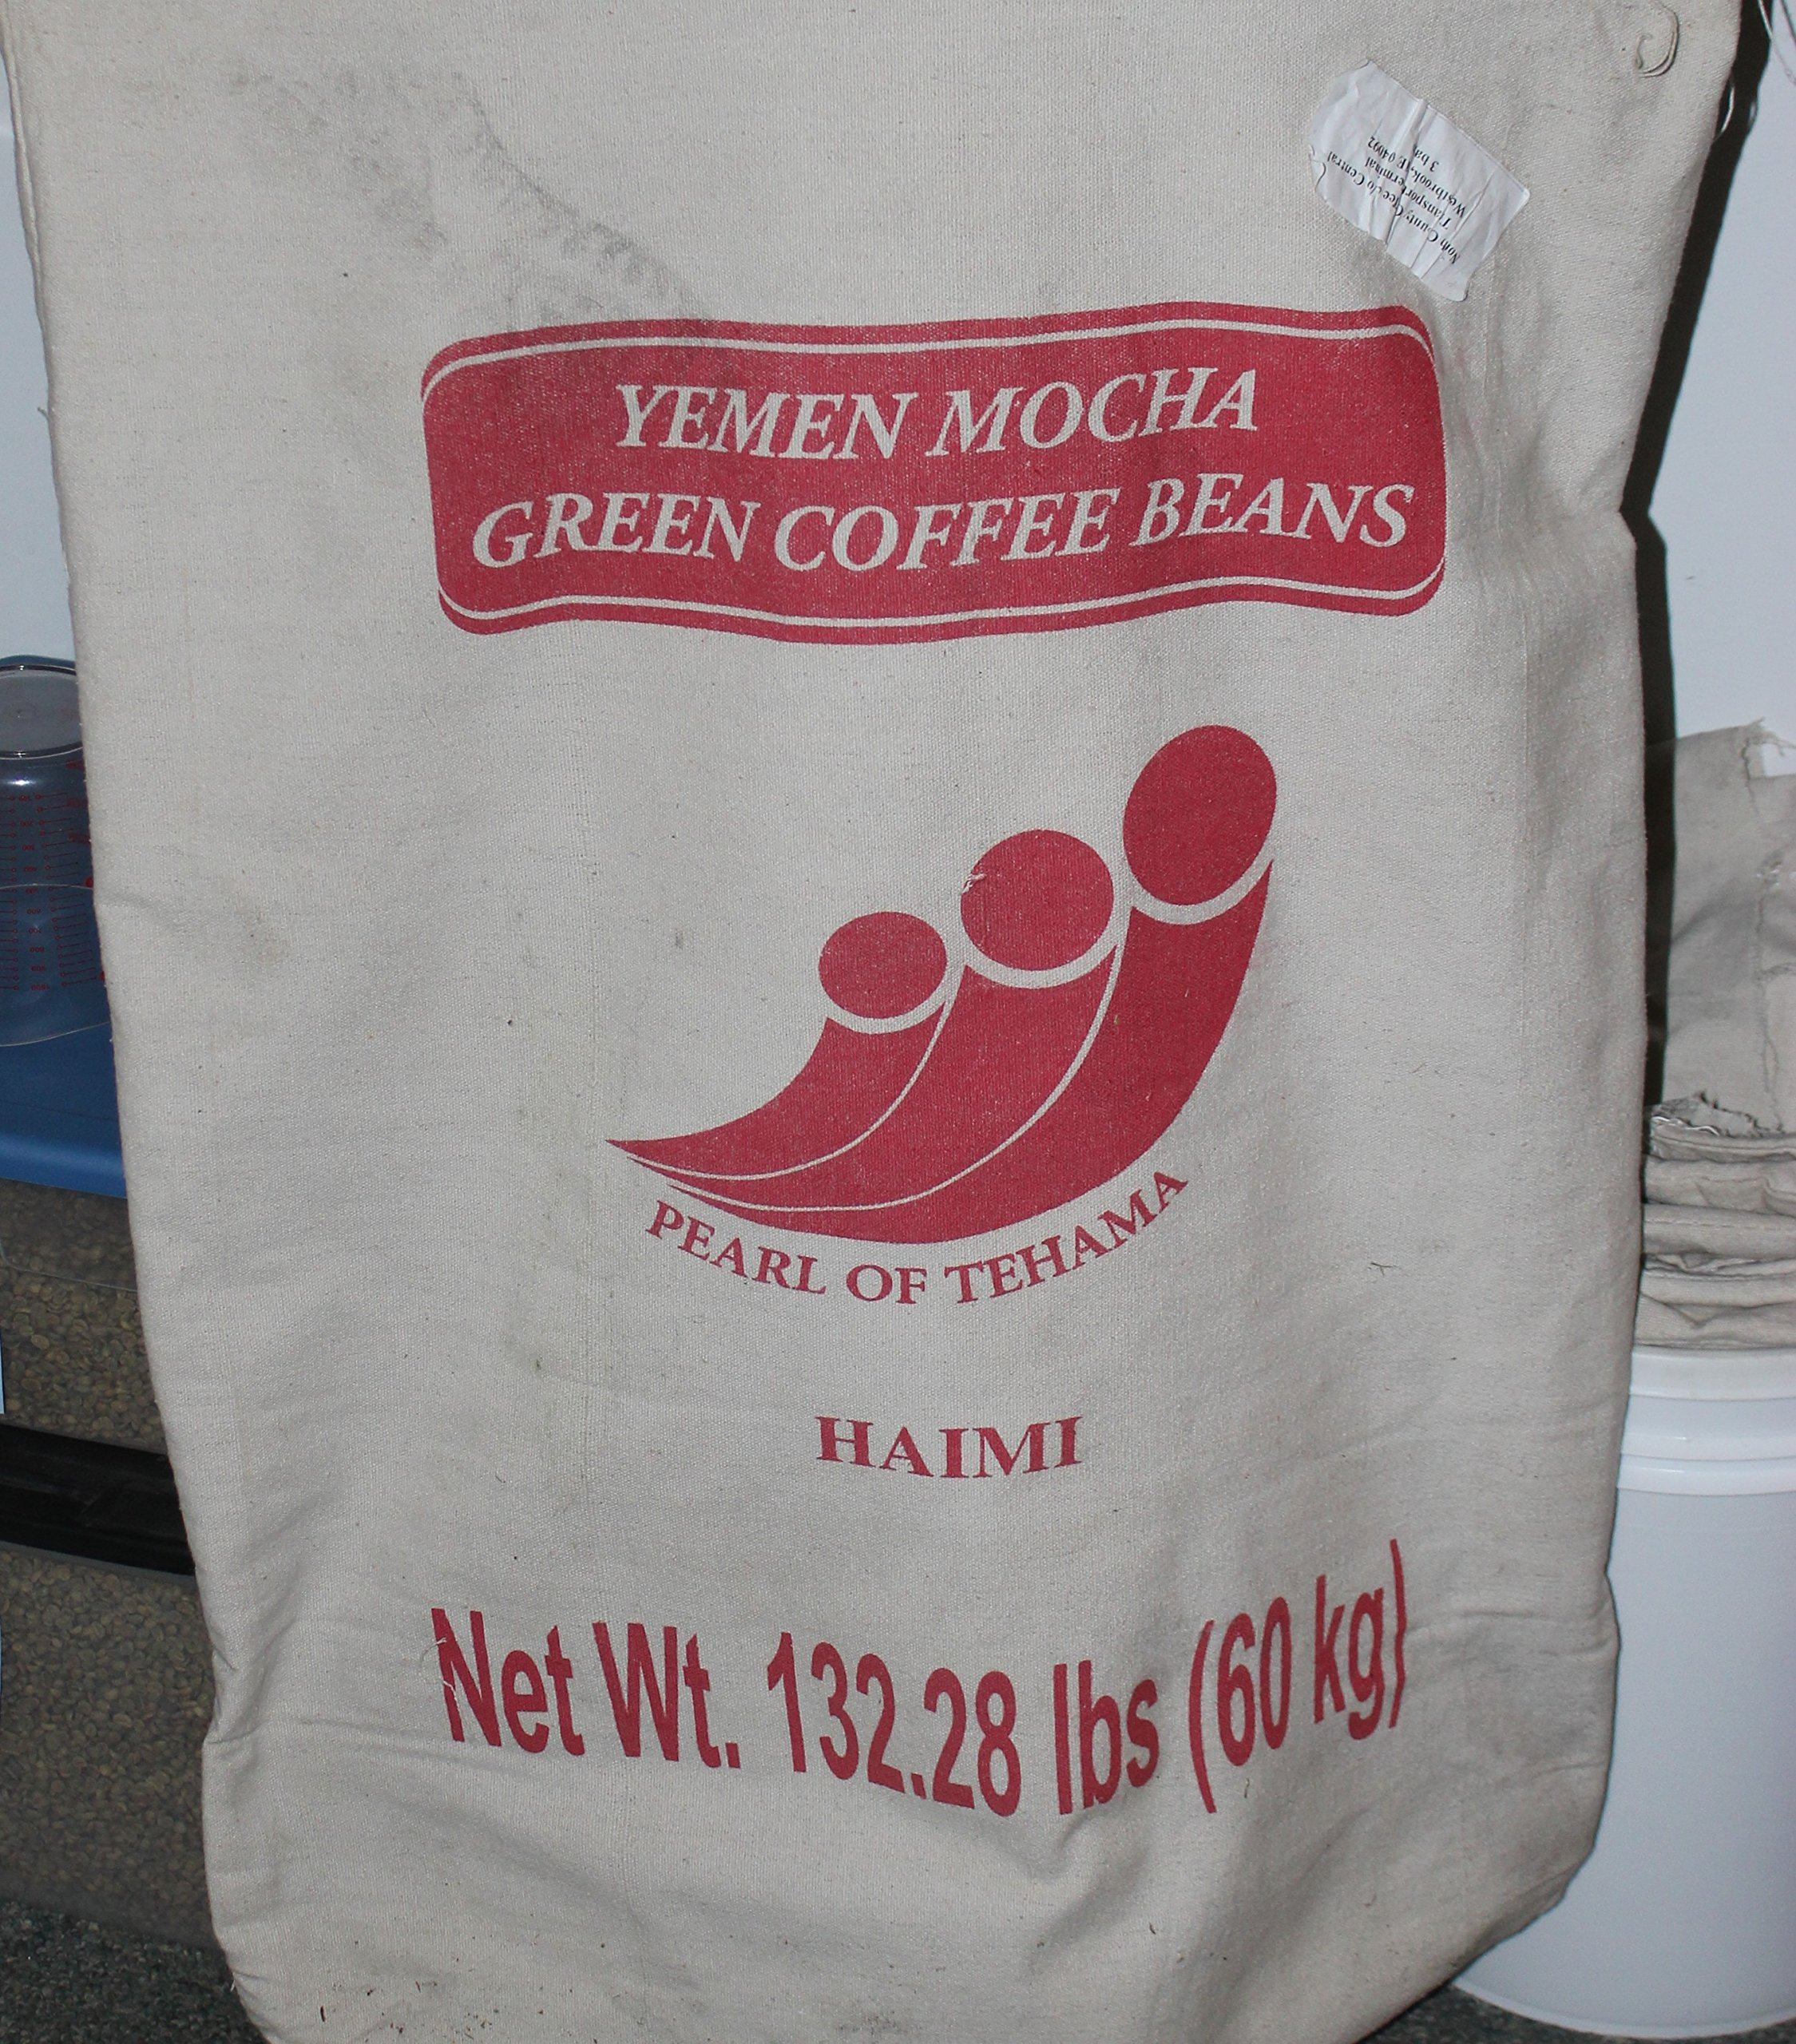 Yemen Mocca Haimi (Al-Haymah) Green (Raw) Coffee Beans - al-Roowad C.A. Fresh Current Crop, May 8, 2018 Arrival - From North Country Roasters (18 Pounds) by Yemen Mocca Haimi Green Coffee Beans (Image #2)